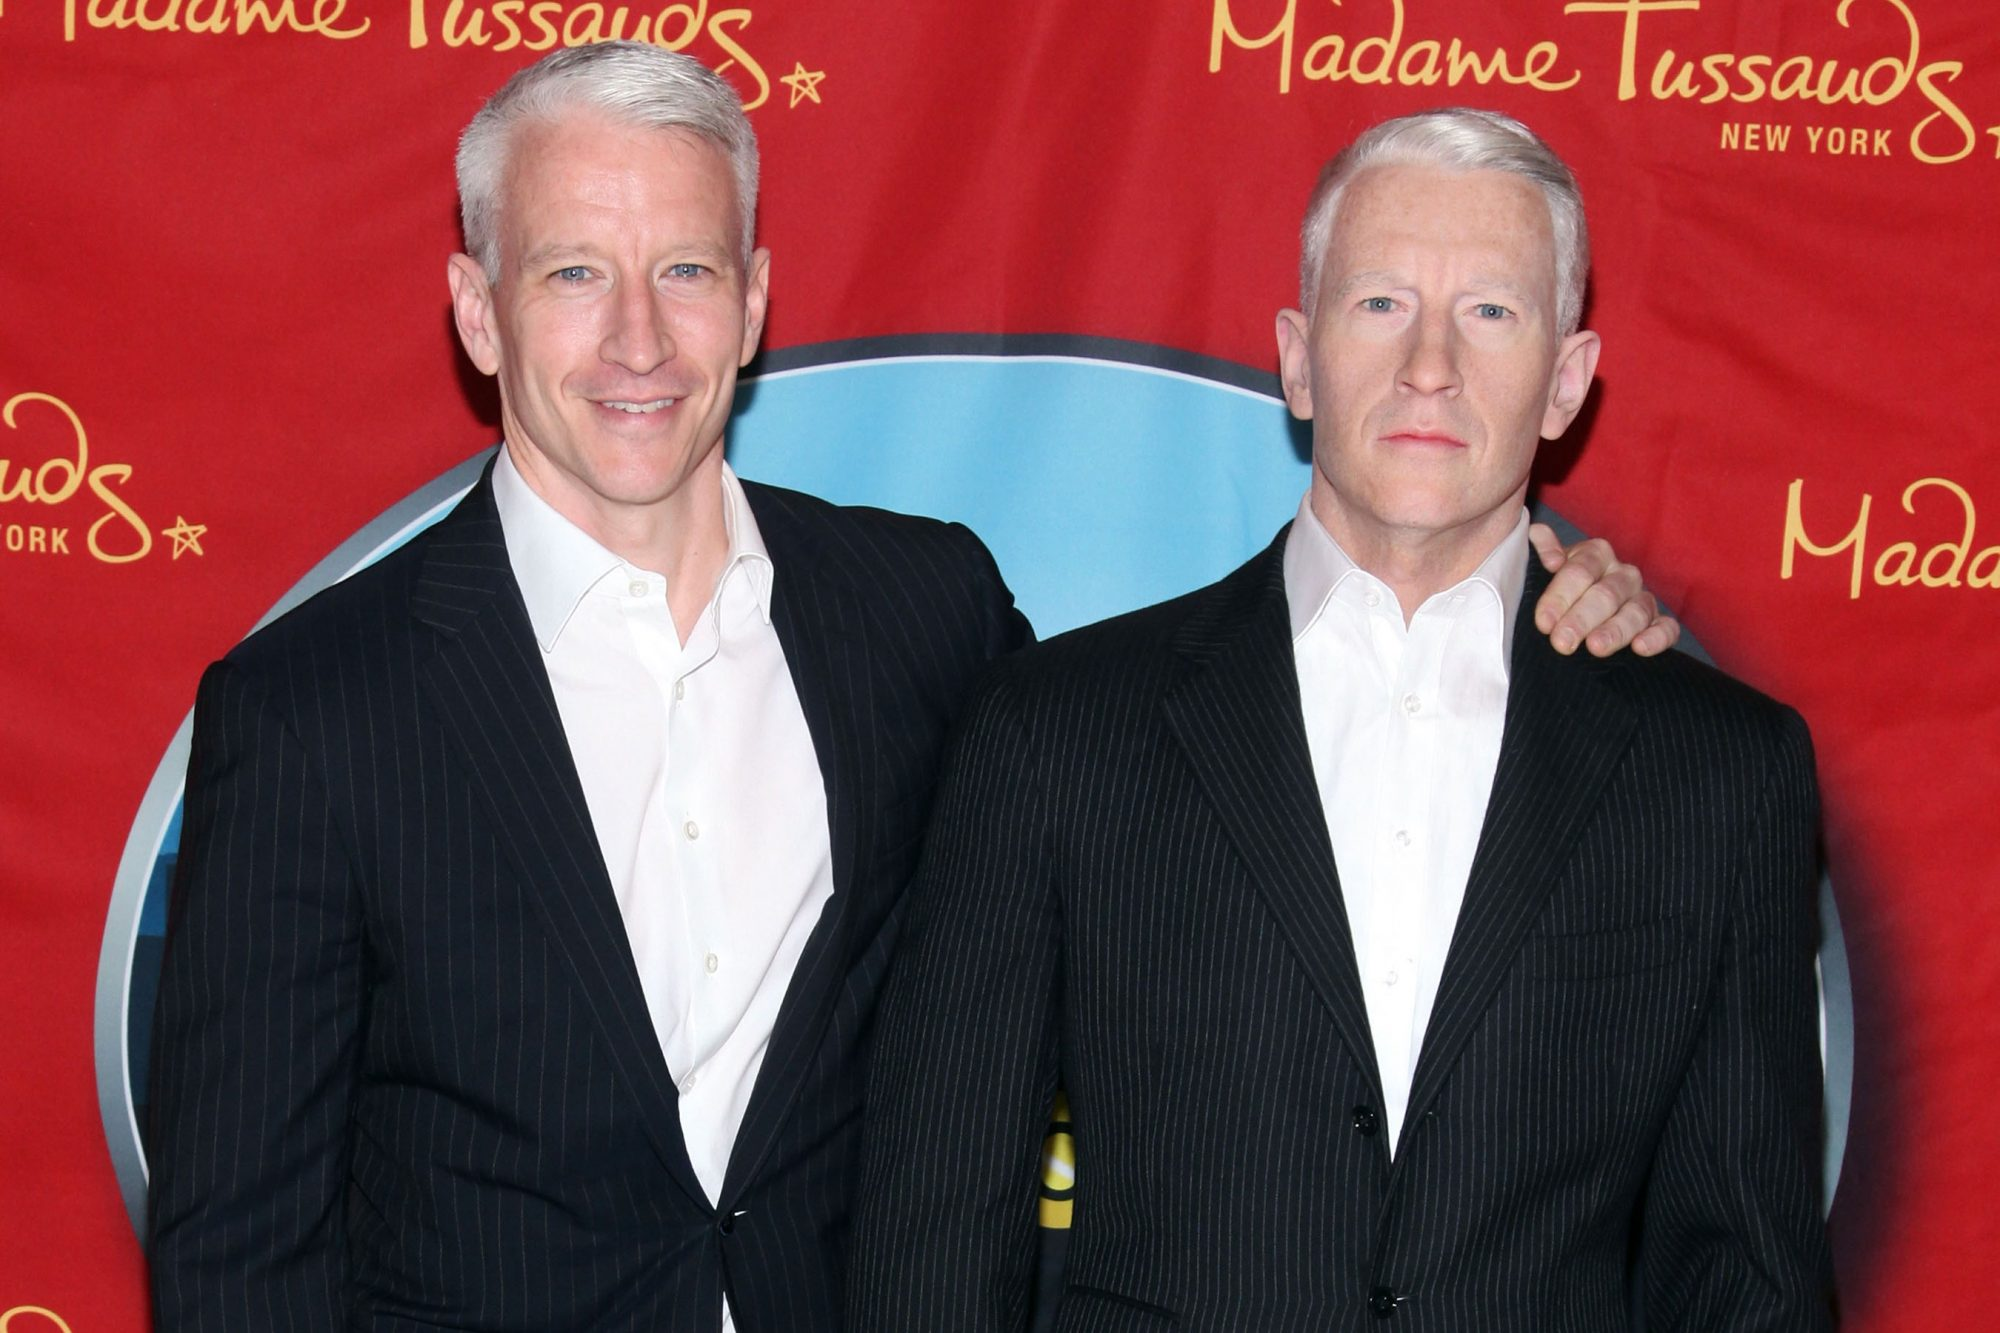 Anderson Cooper Unveils His Wax Figure At Madame Tussauds